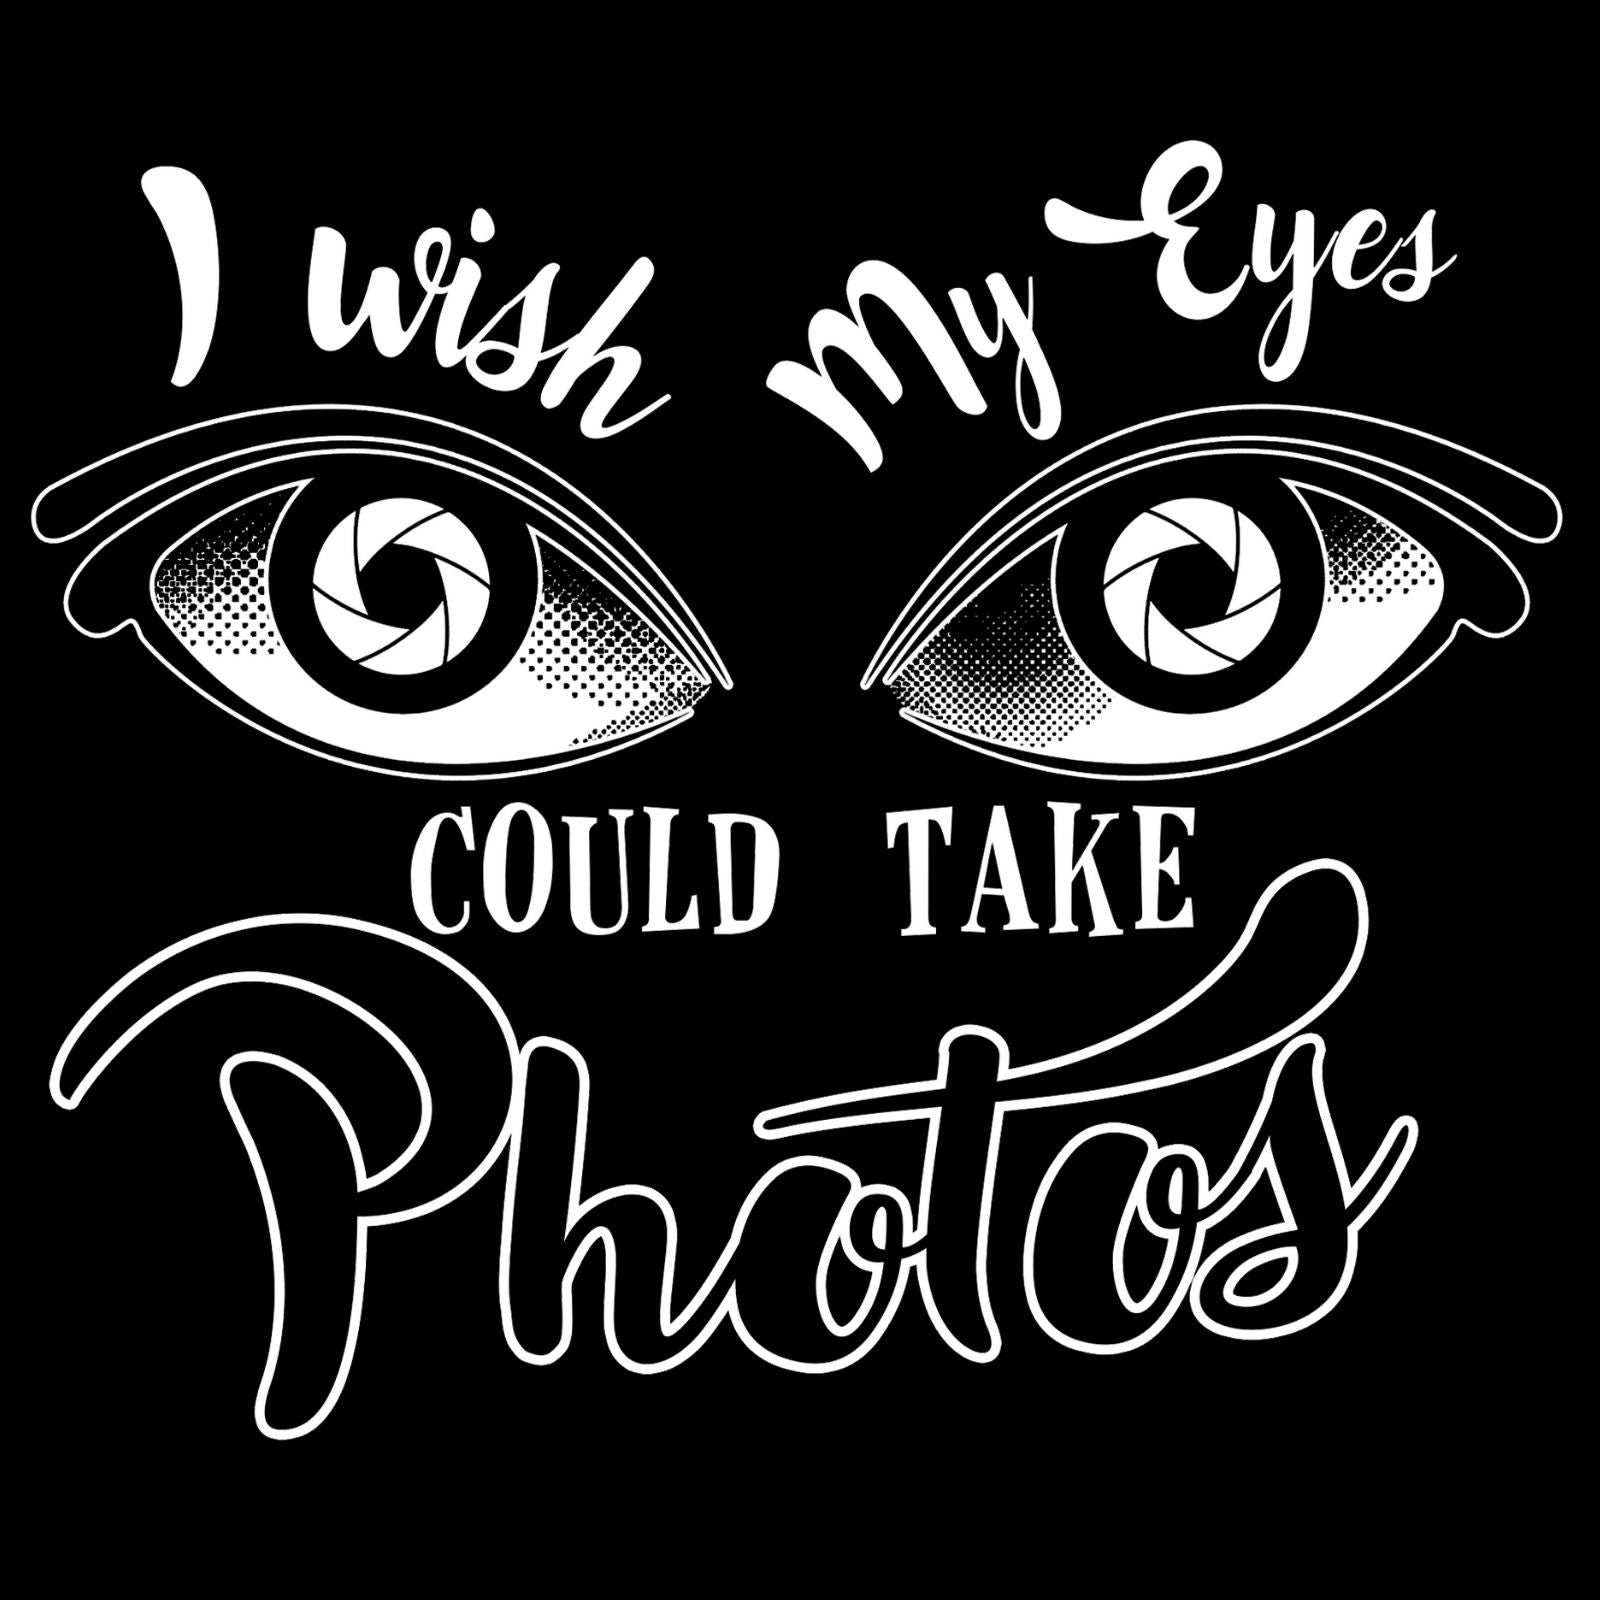 I Wish My Eyes Could Take Photos - Bastard Graphics